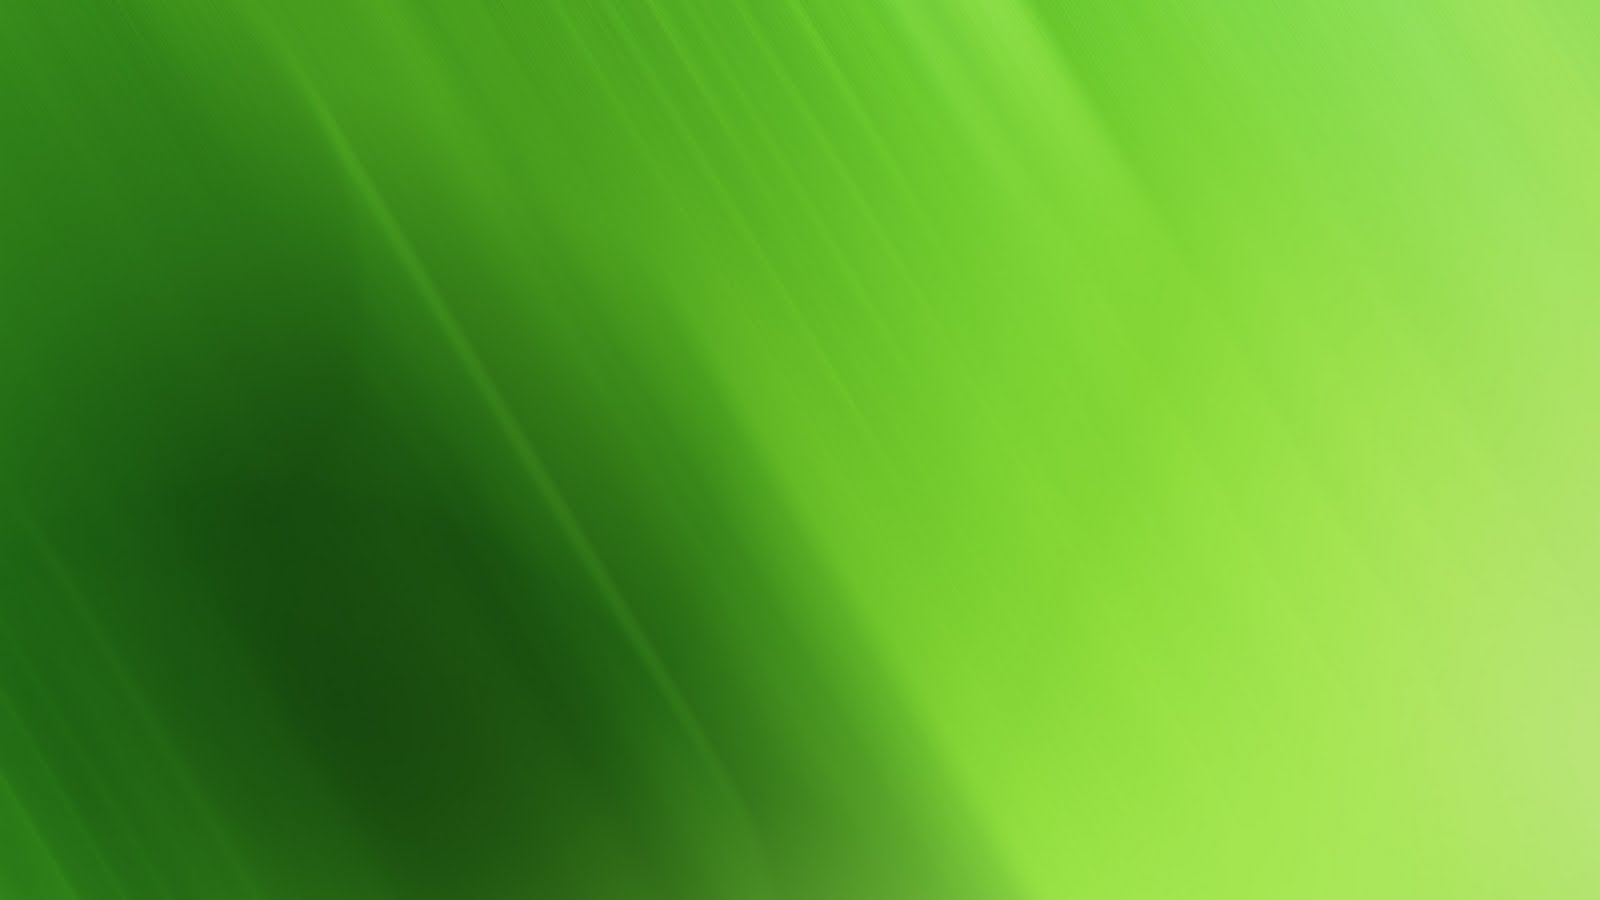 Green Abstract Desktop